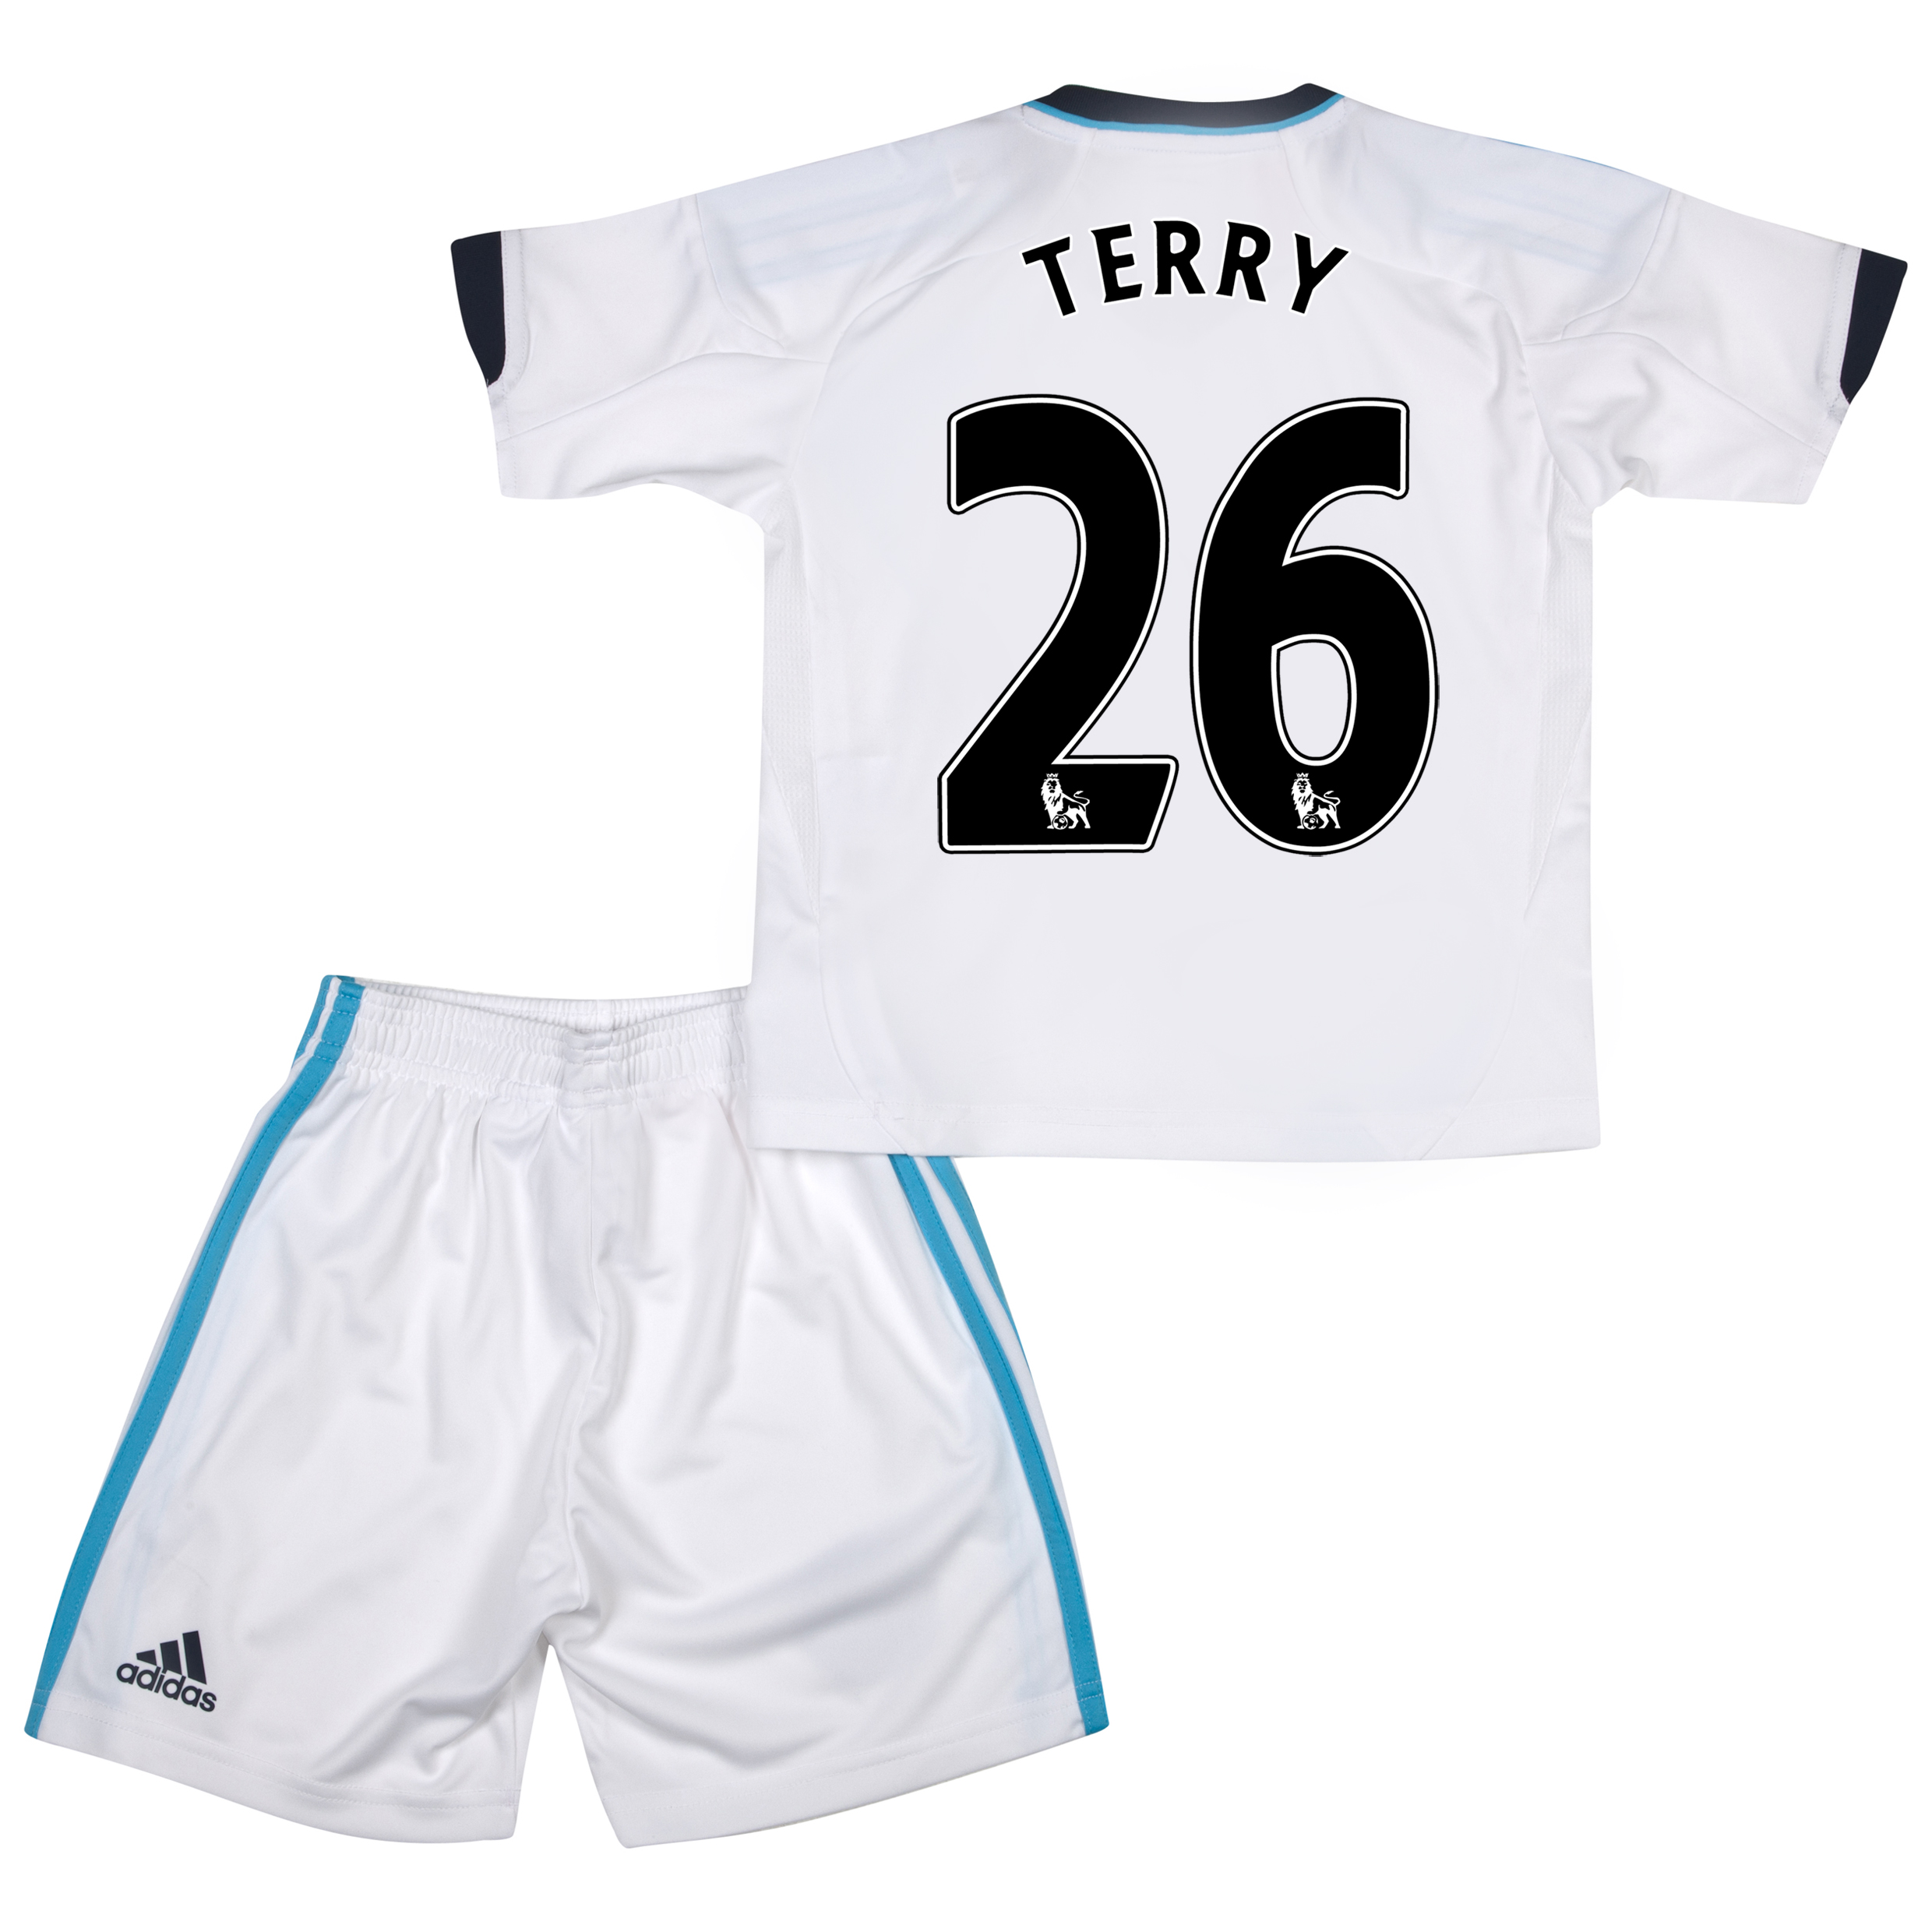 Chelsea Away Mini Kit 2012/13 with Terry 26 printing